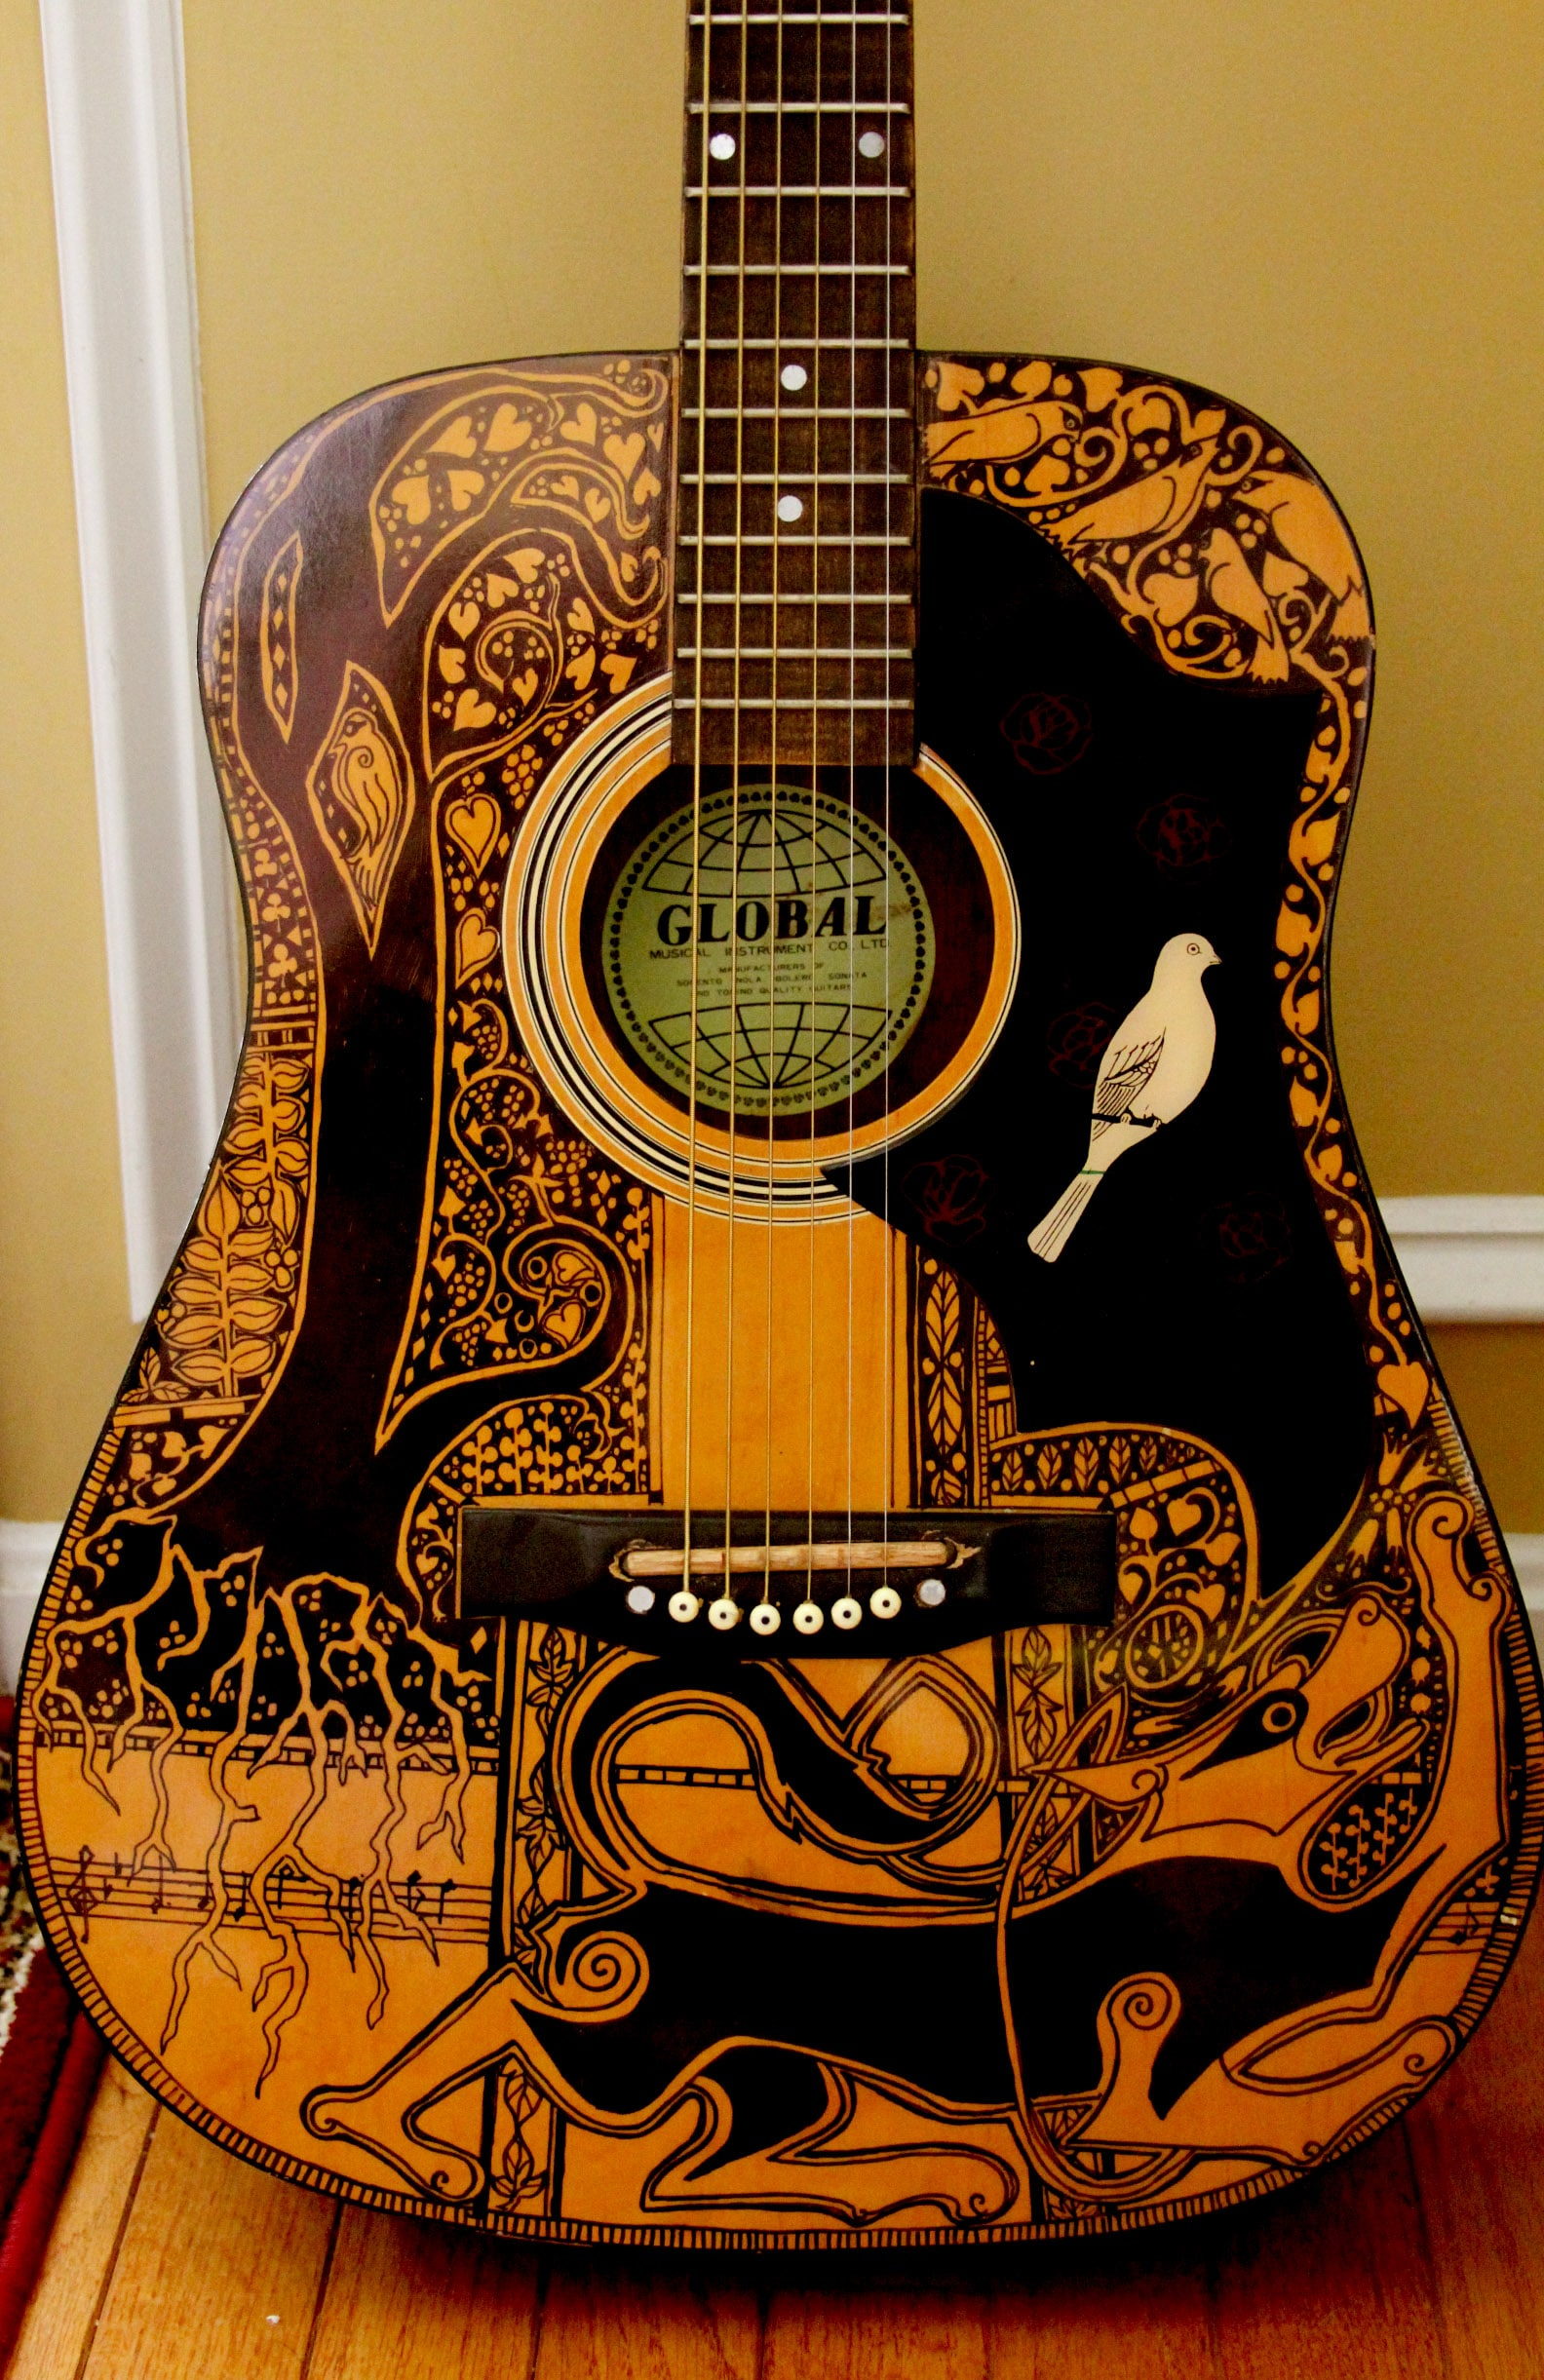 Win a guitar designed by Maggie Stiefvater